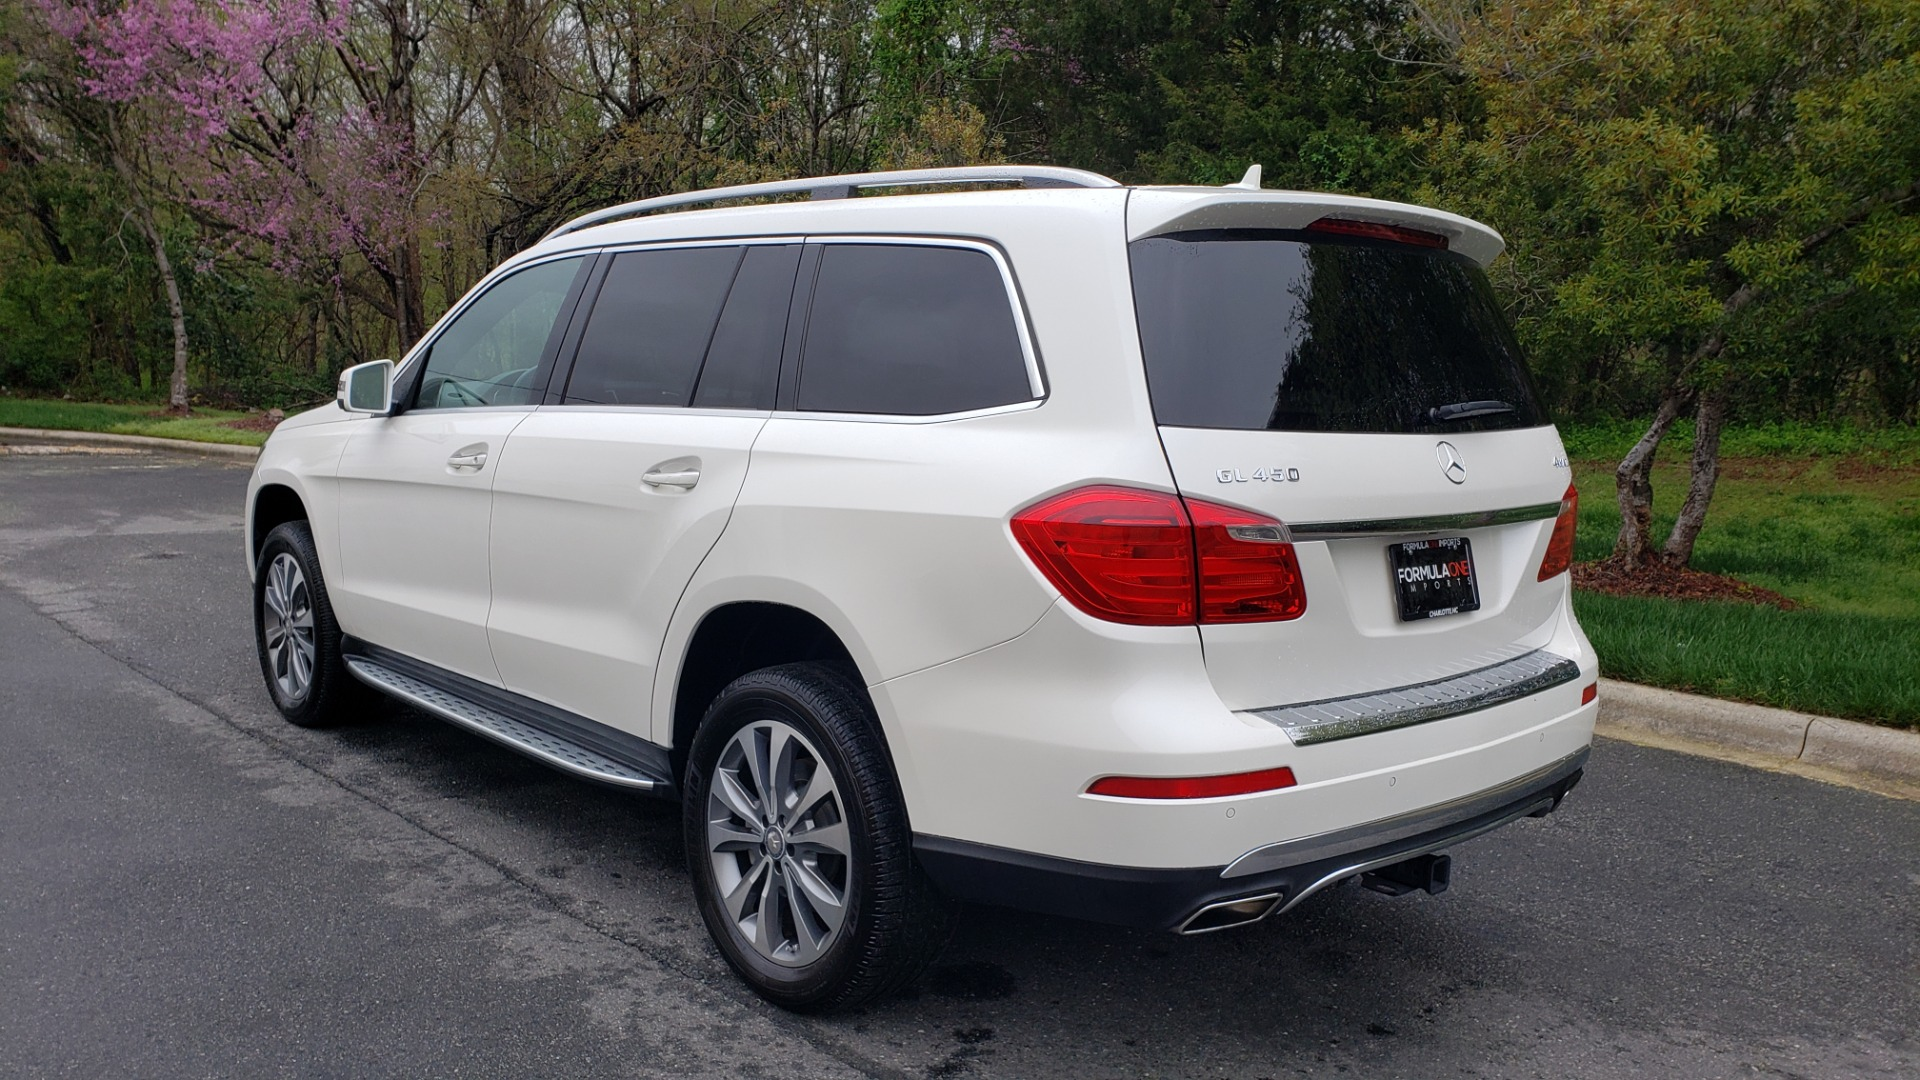 Used 2015 Mercedes-Benz GL-Class GL 450 4MATIC PREMIUM / NAV / PANO-ROOF / LANE TRACK / PARK ASST for sale Sold at Formula Imports in Charlotte NC 28227 3